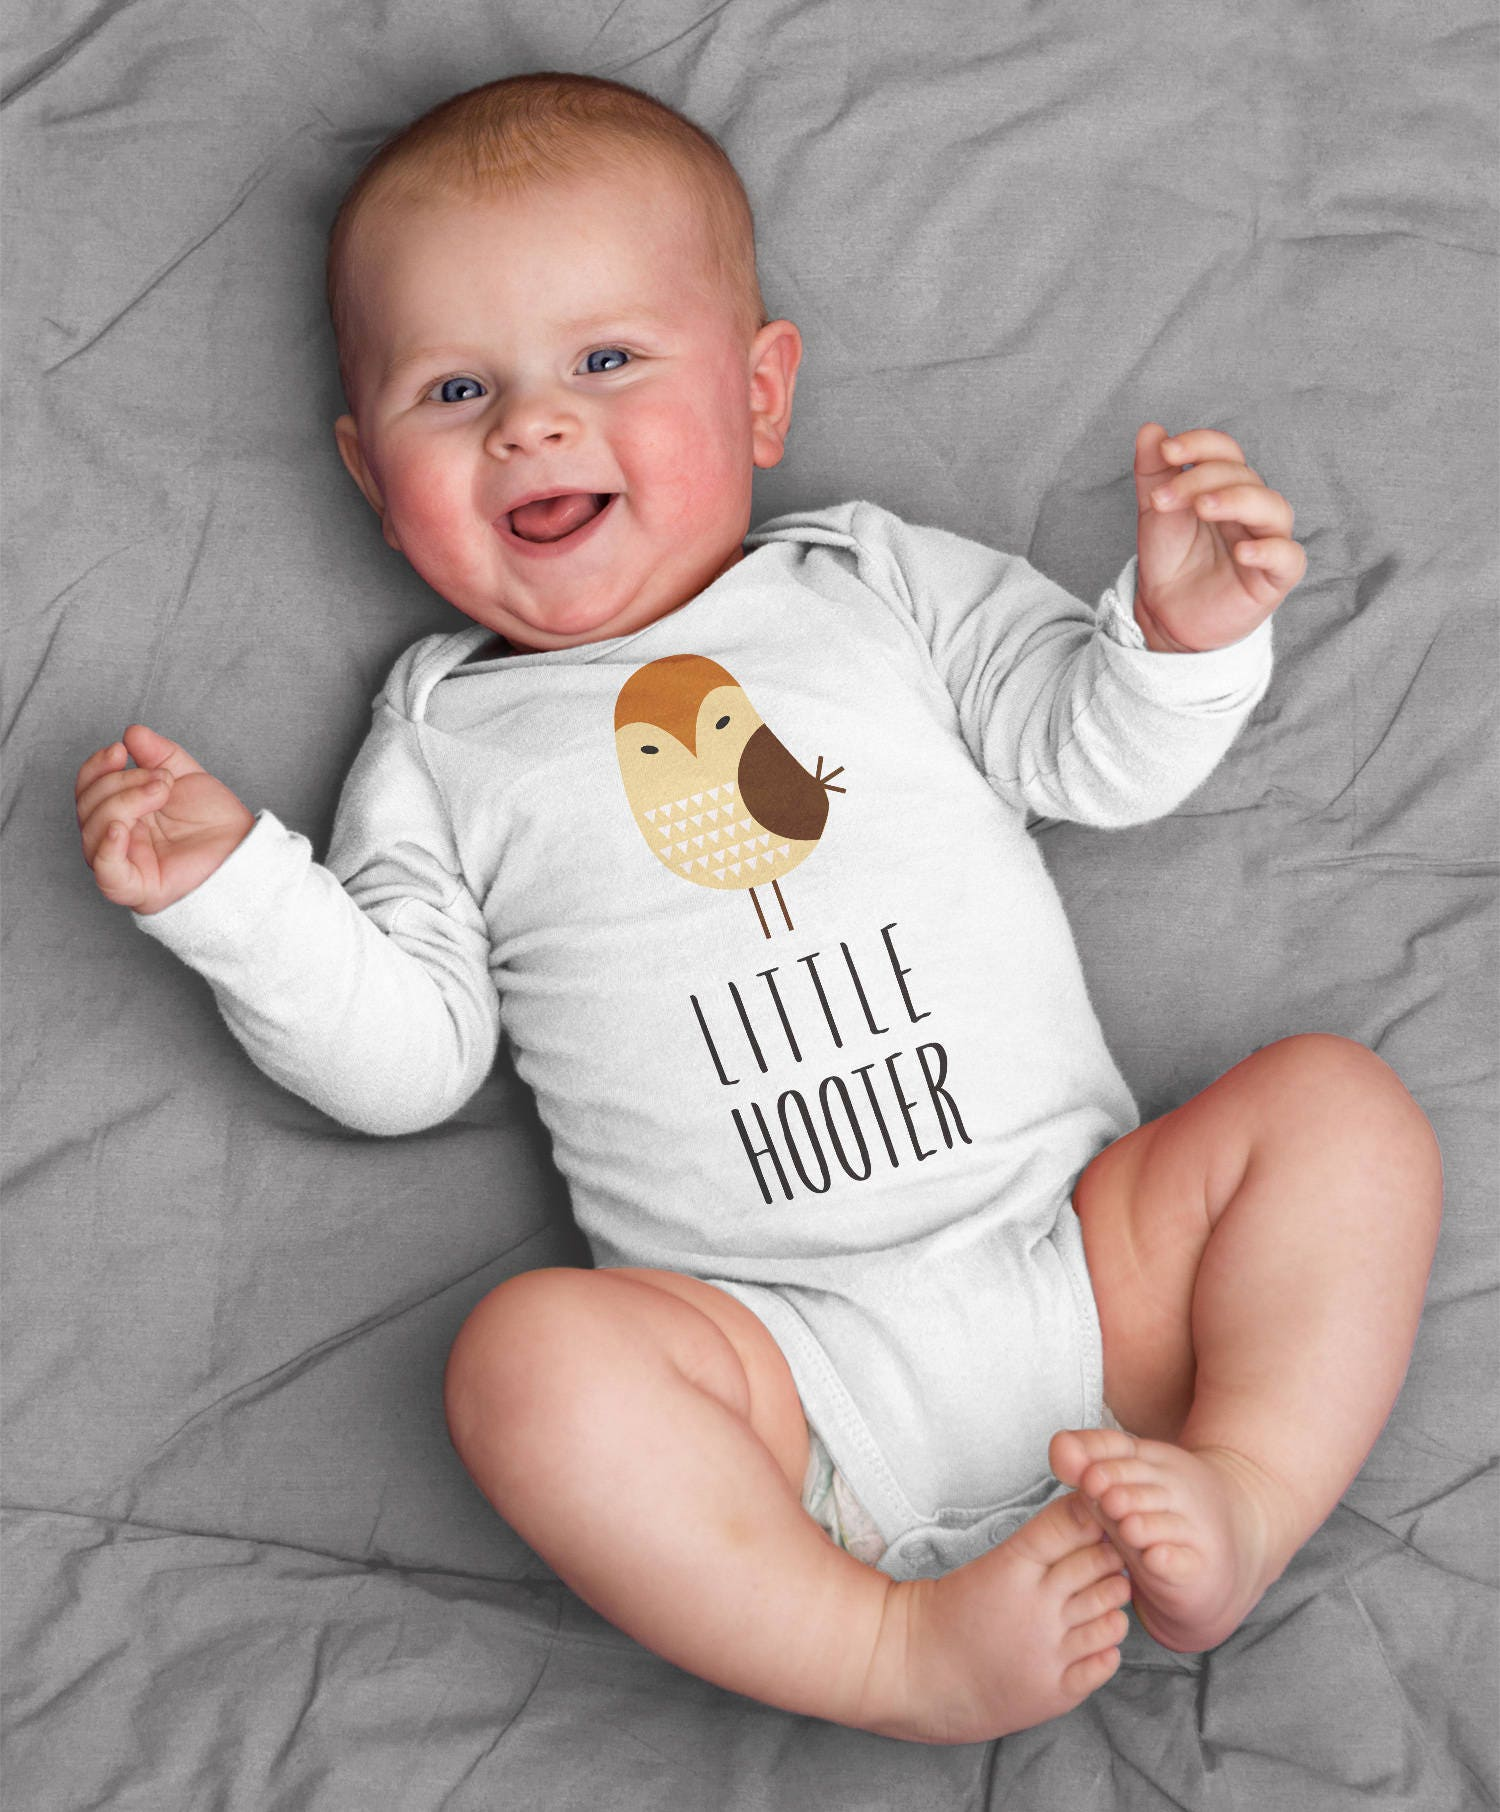 Little Hooter Owl Baby Clothes Bodysuit Romper for Baby Boy